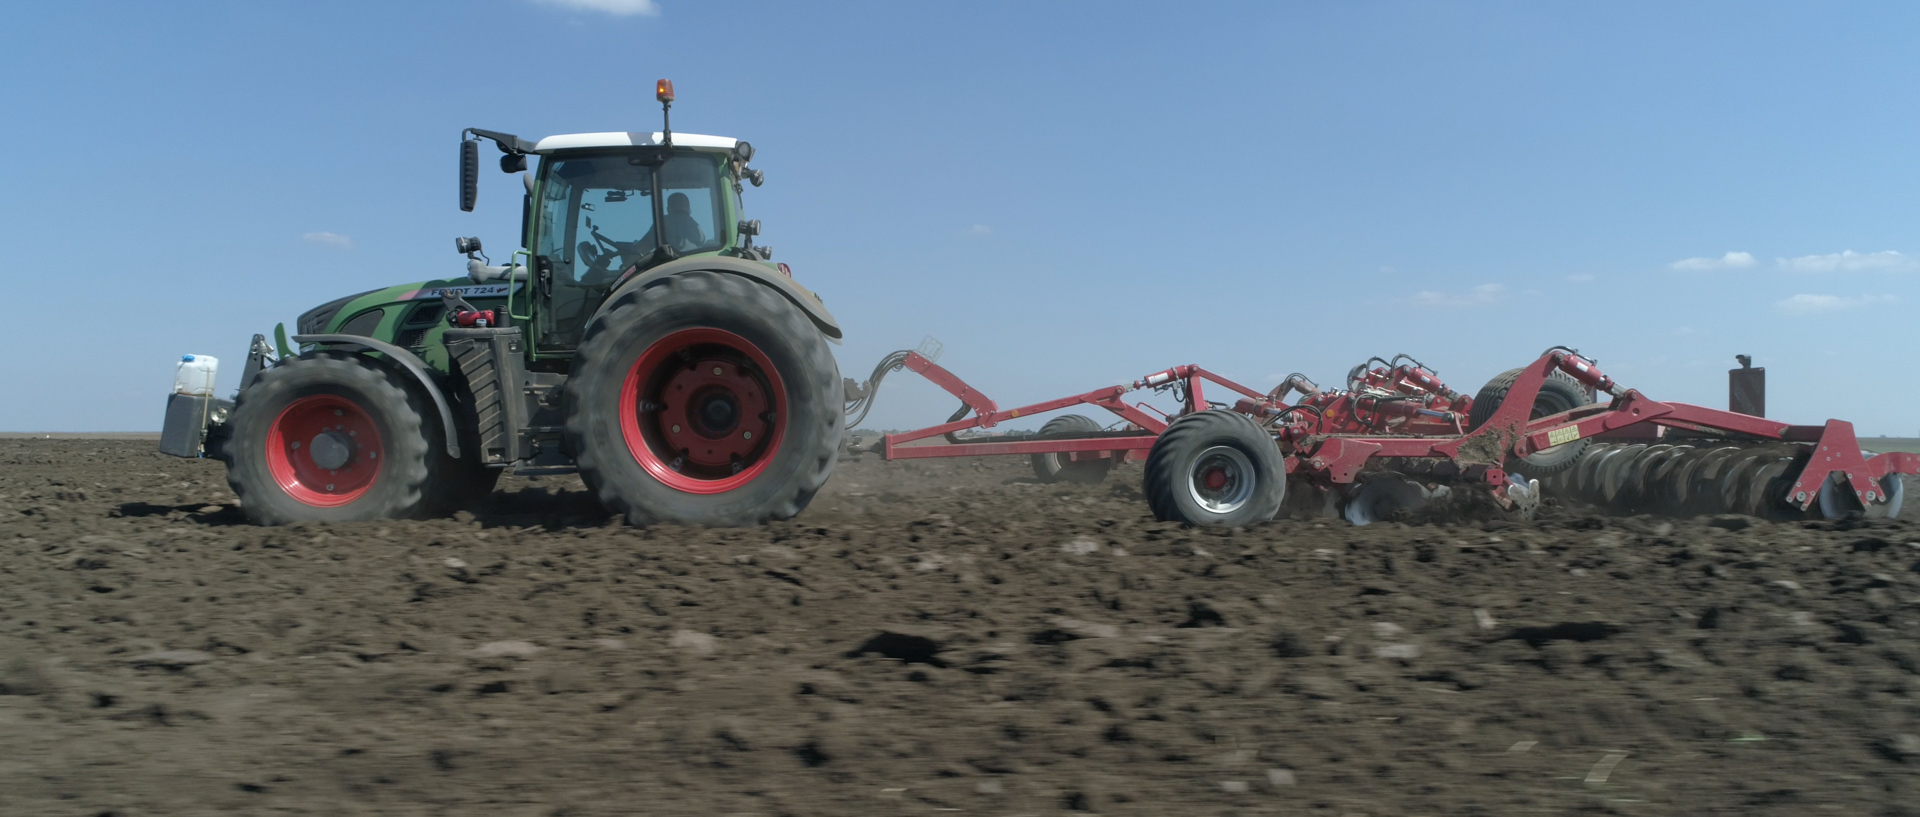 fendt tractor with horsch for mewi the farmers video by popotam productions video agency timisoara before color grading